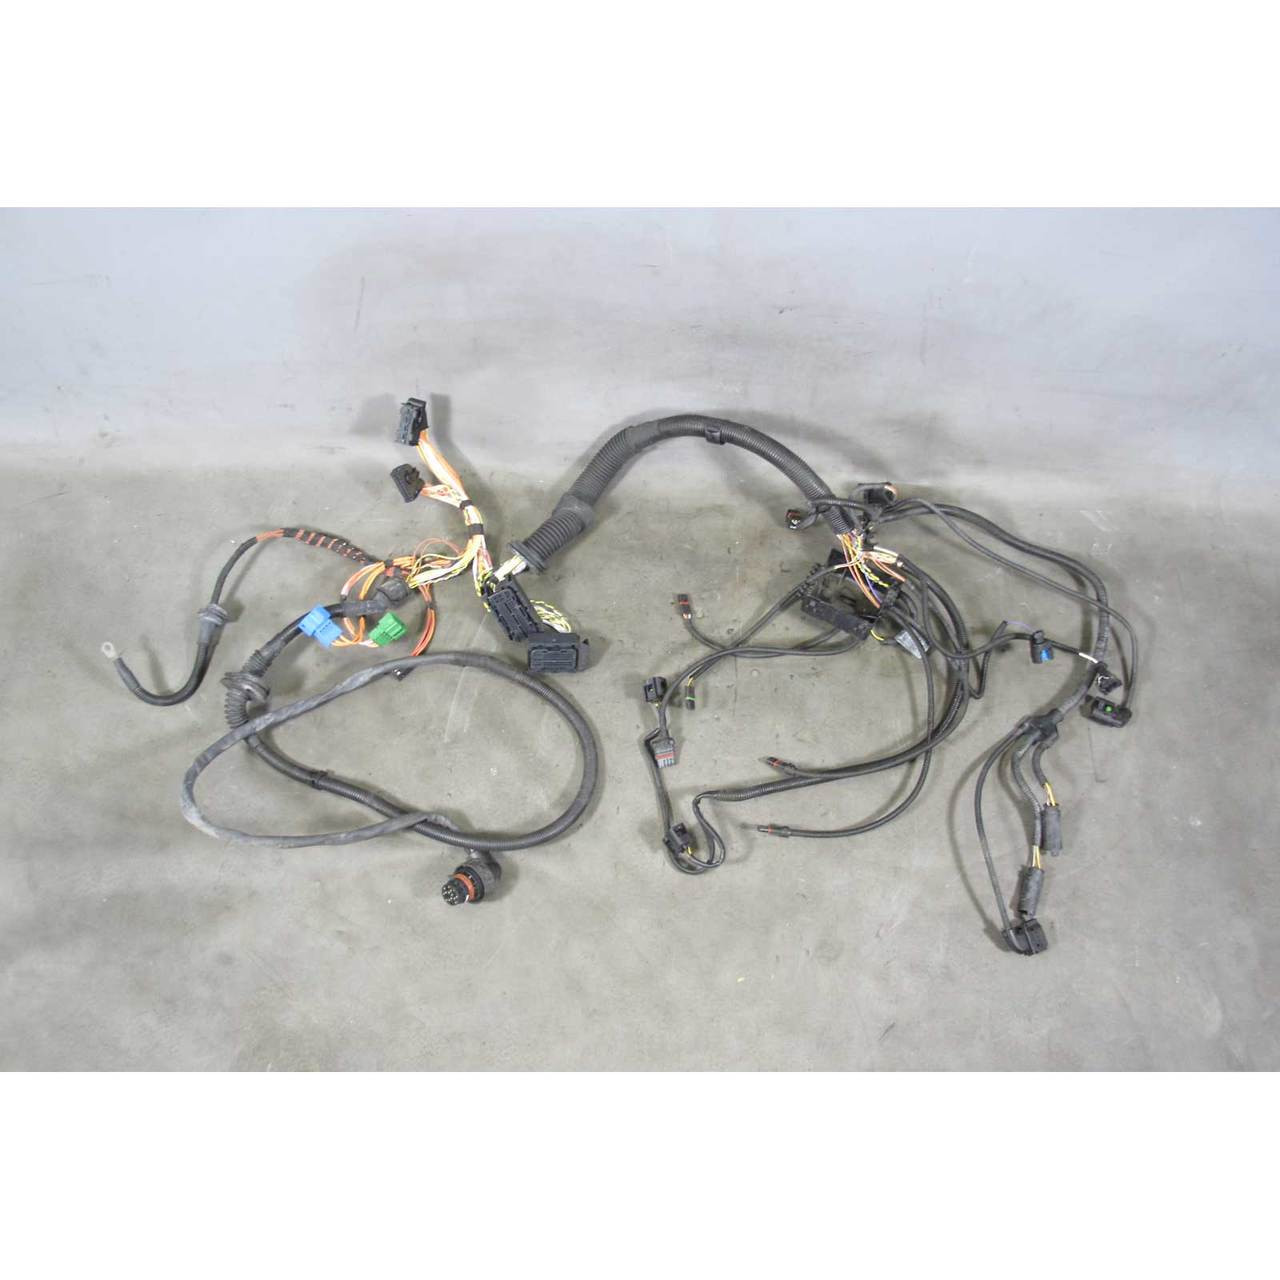 Bmw E83 X3 Sav N52 Late Model Engine Wiring Harness For Auto Trans Silver Wire